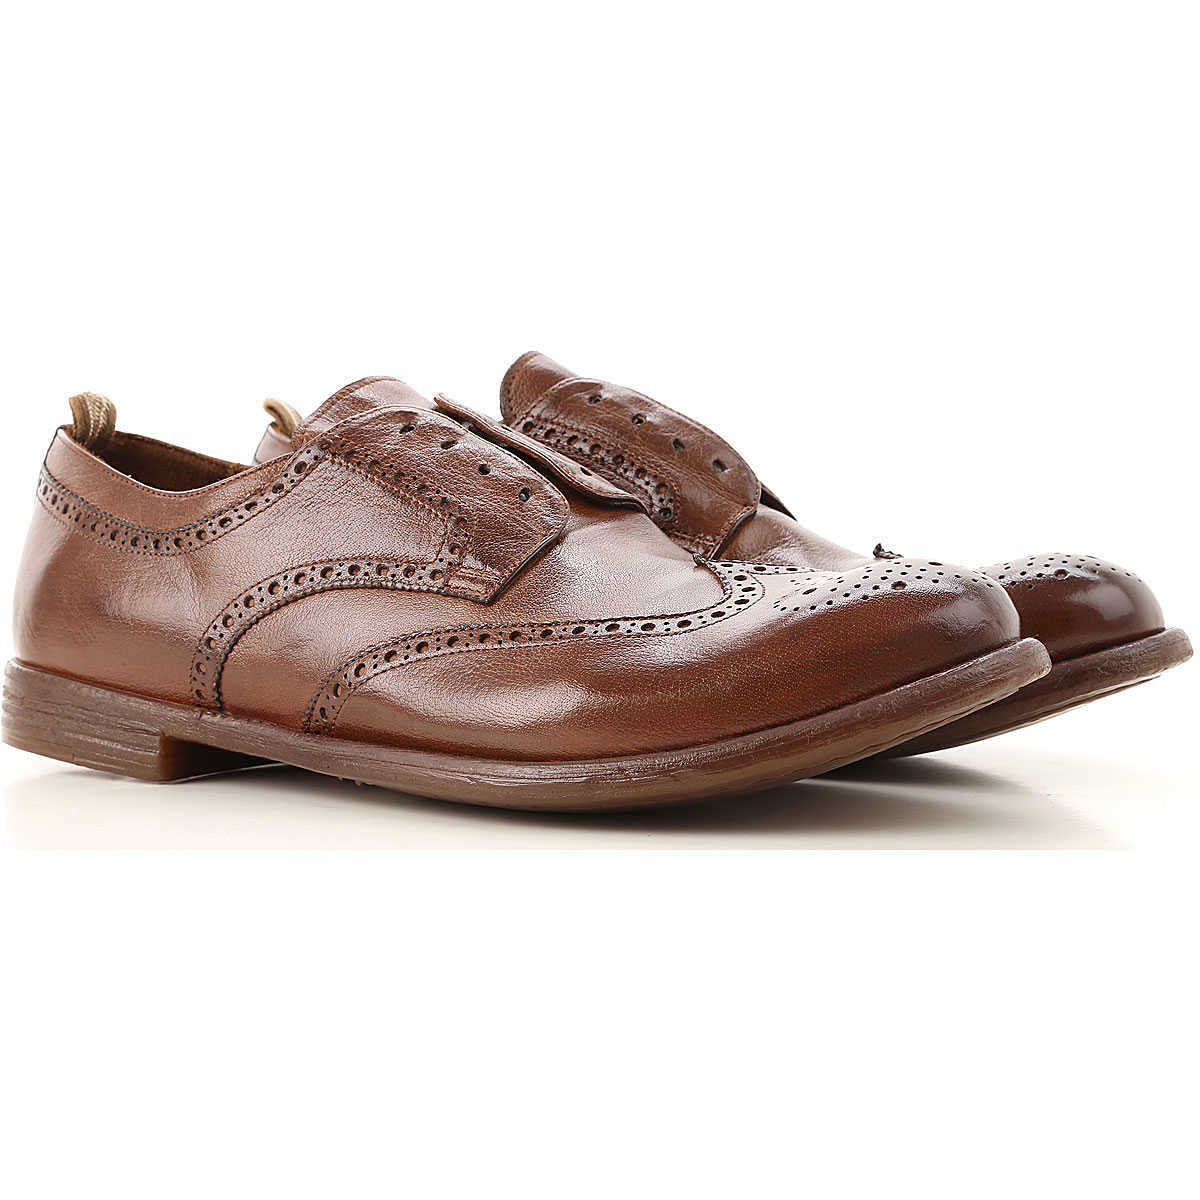 Officine Creative Lace Up Shoes for Men Oxfords 6.5 6.75 7 7.5 8 9 9.25 Derbies and Brogues On Sale UK - GOOFASH